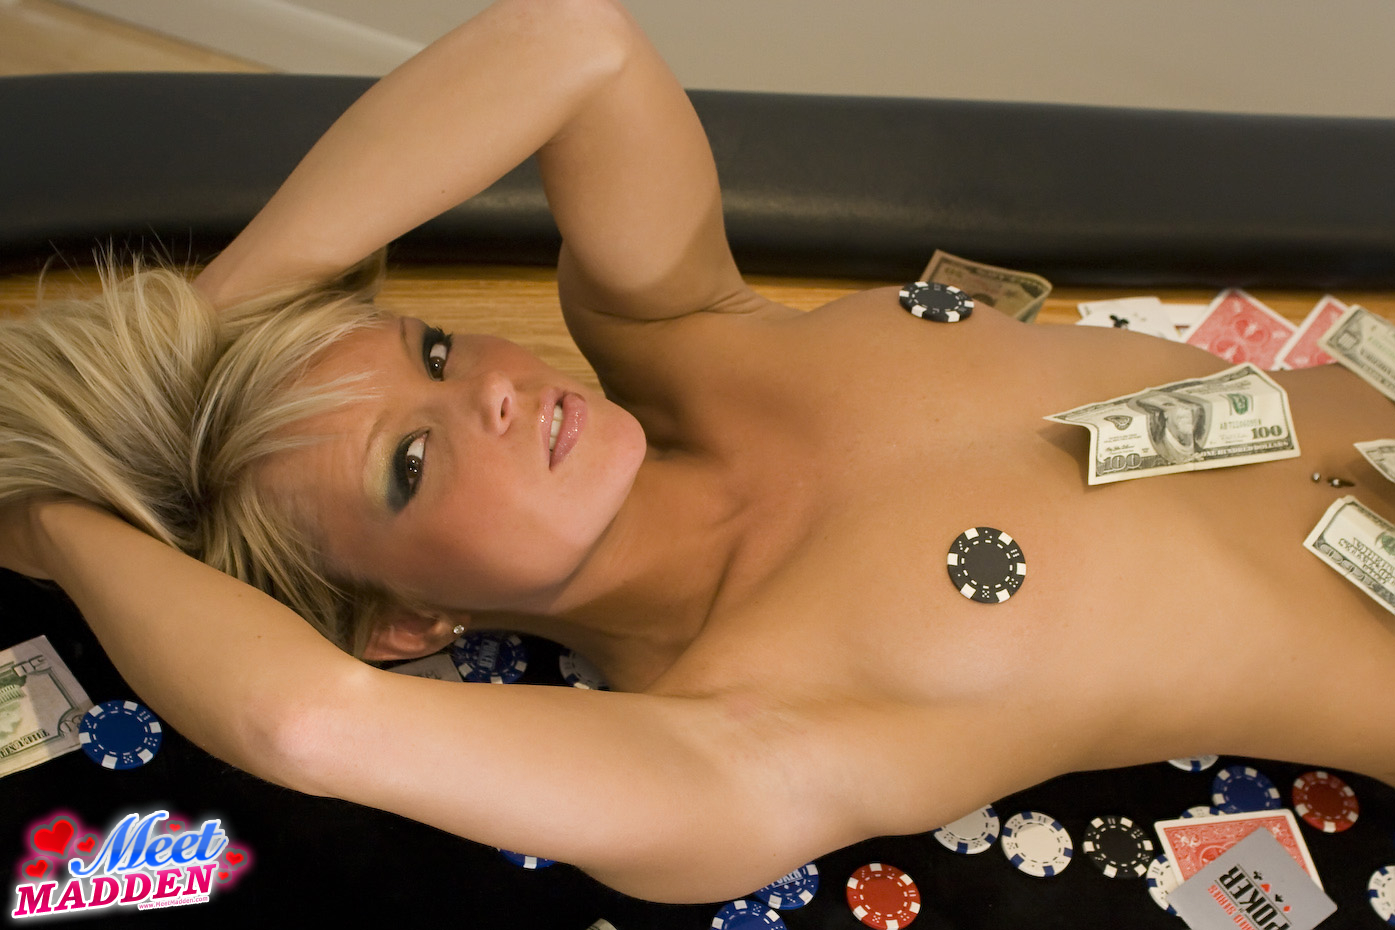 Hot nude girl madden poker join. All